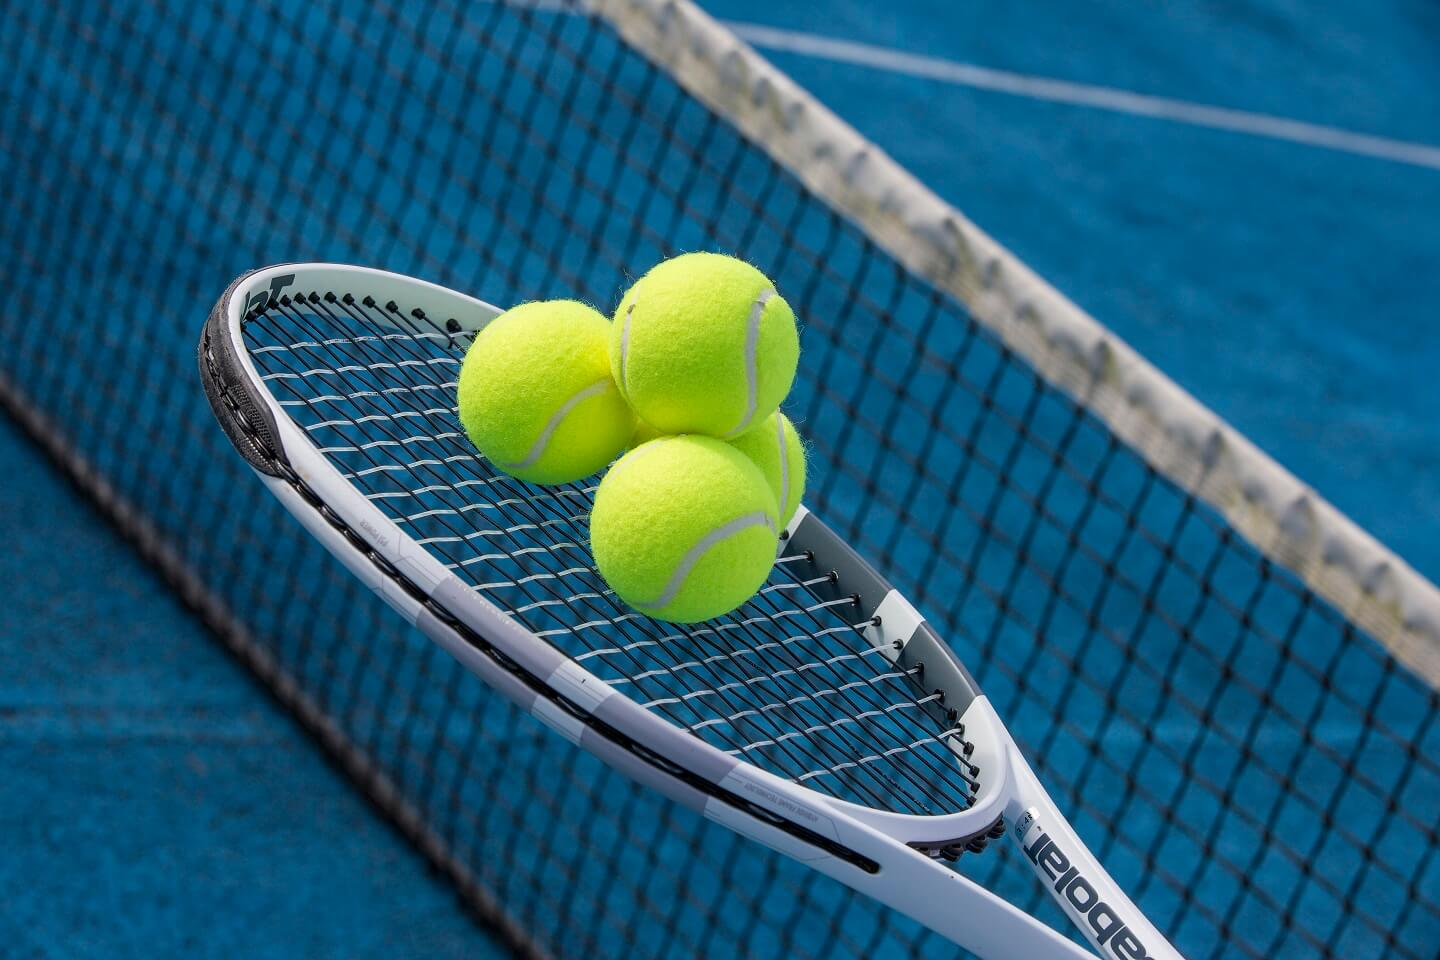 raquet ball net